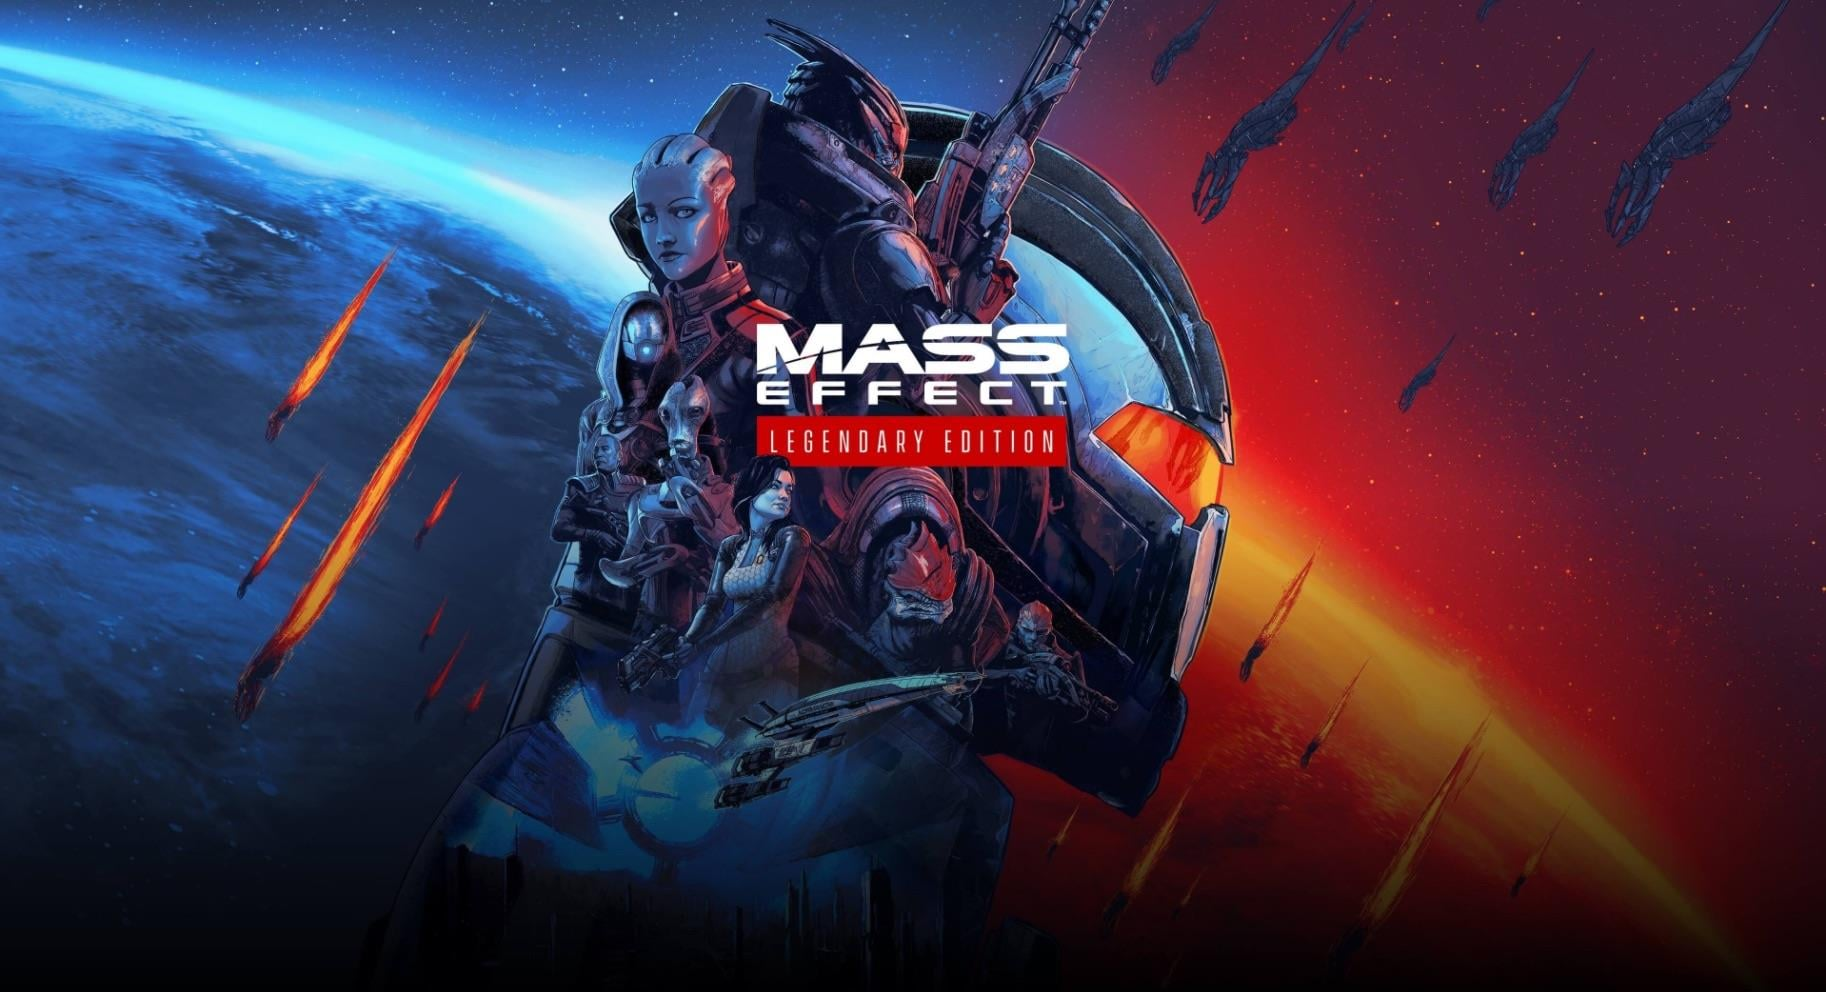 Mass Effect Legendary Edition announced by BioWare - PC